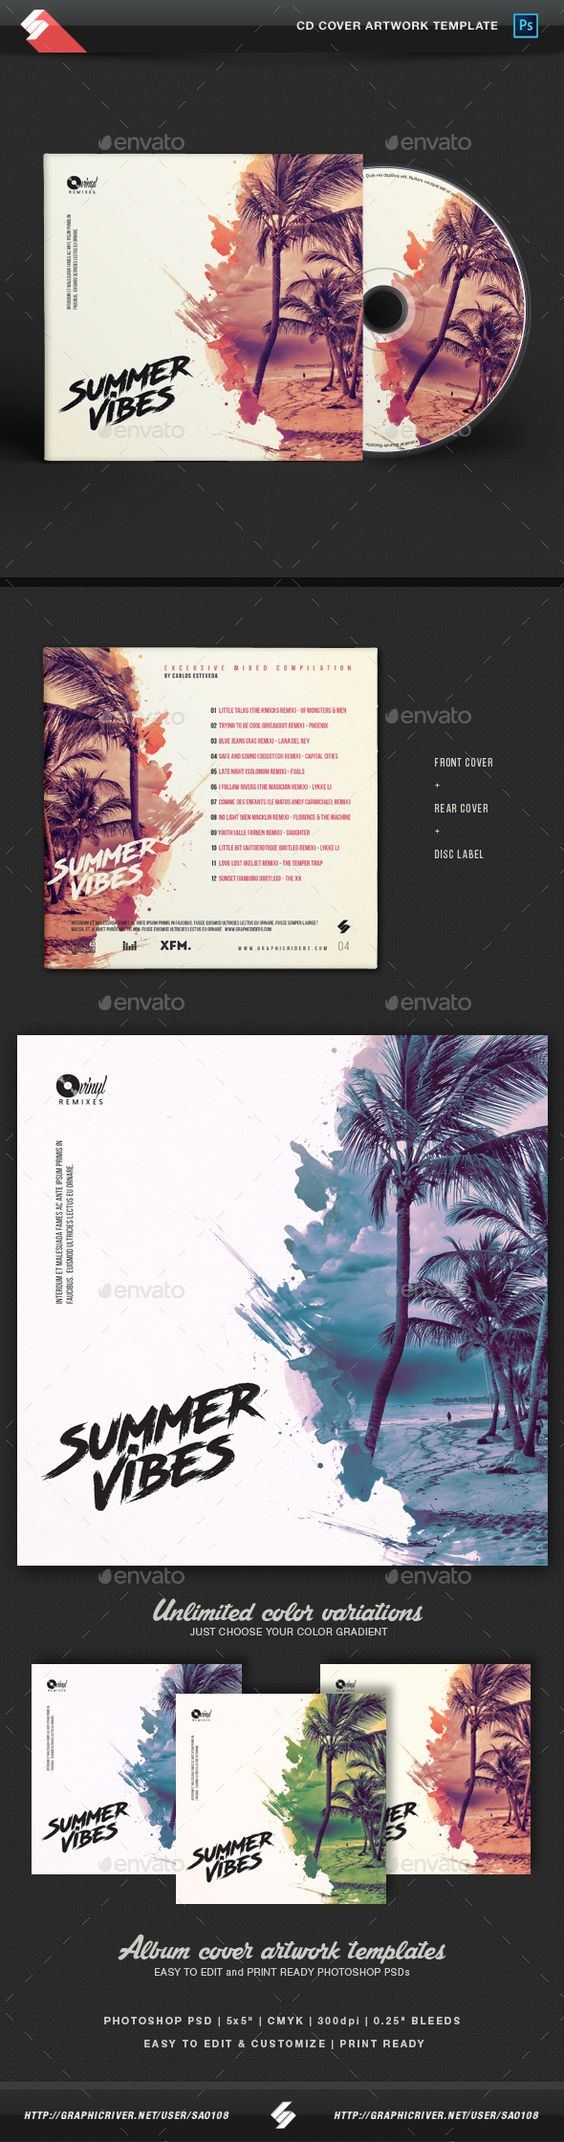 Summer Vibes vol.4 - CD Cover Artwork Template